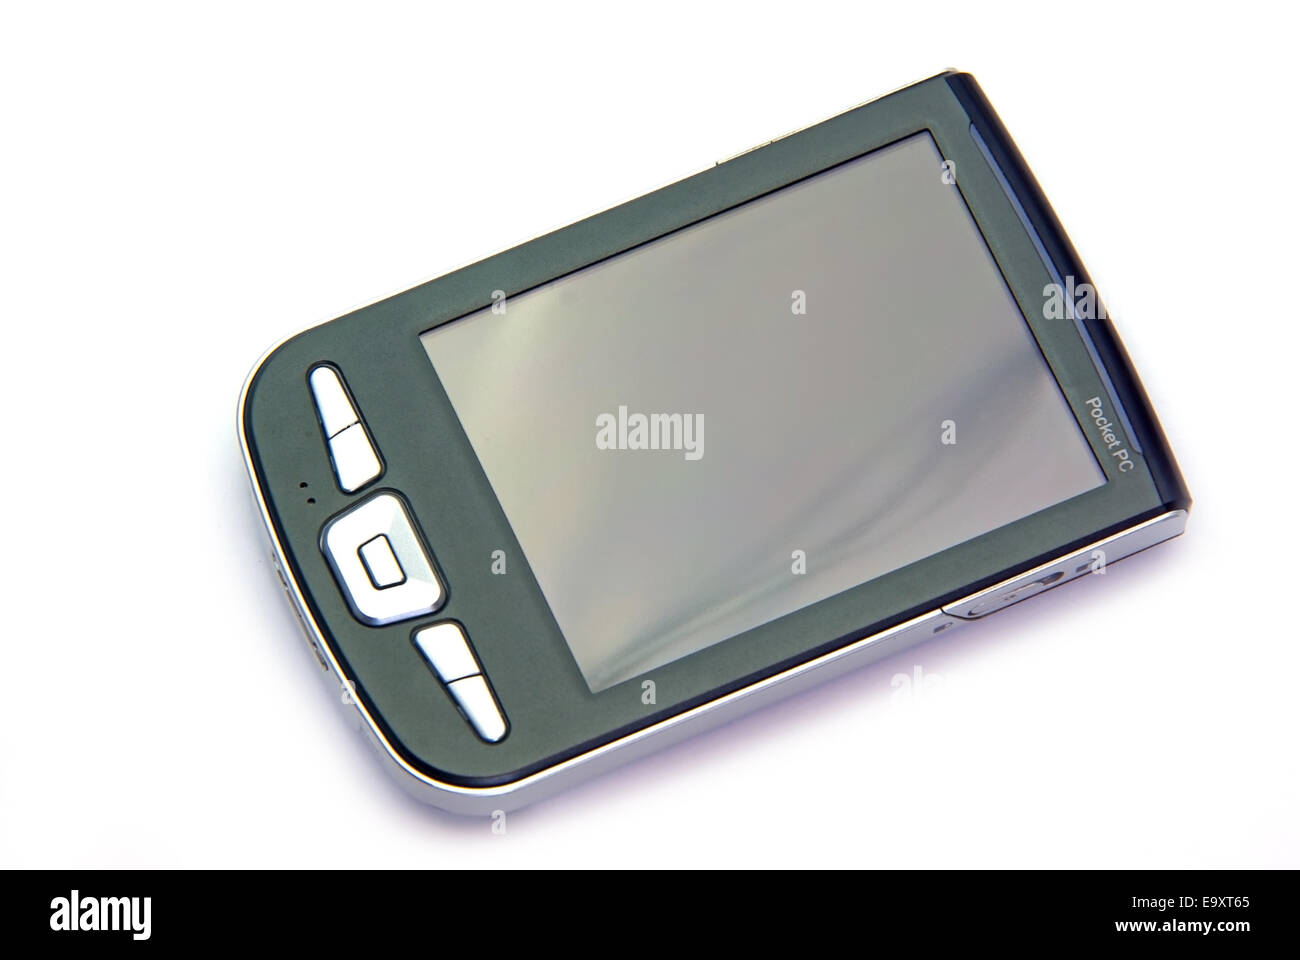 PDA phone isolated on a white background. - Stock Image